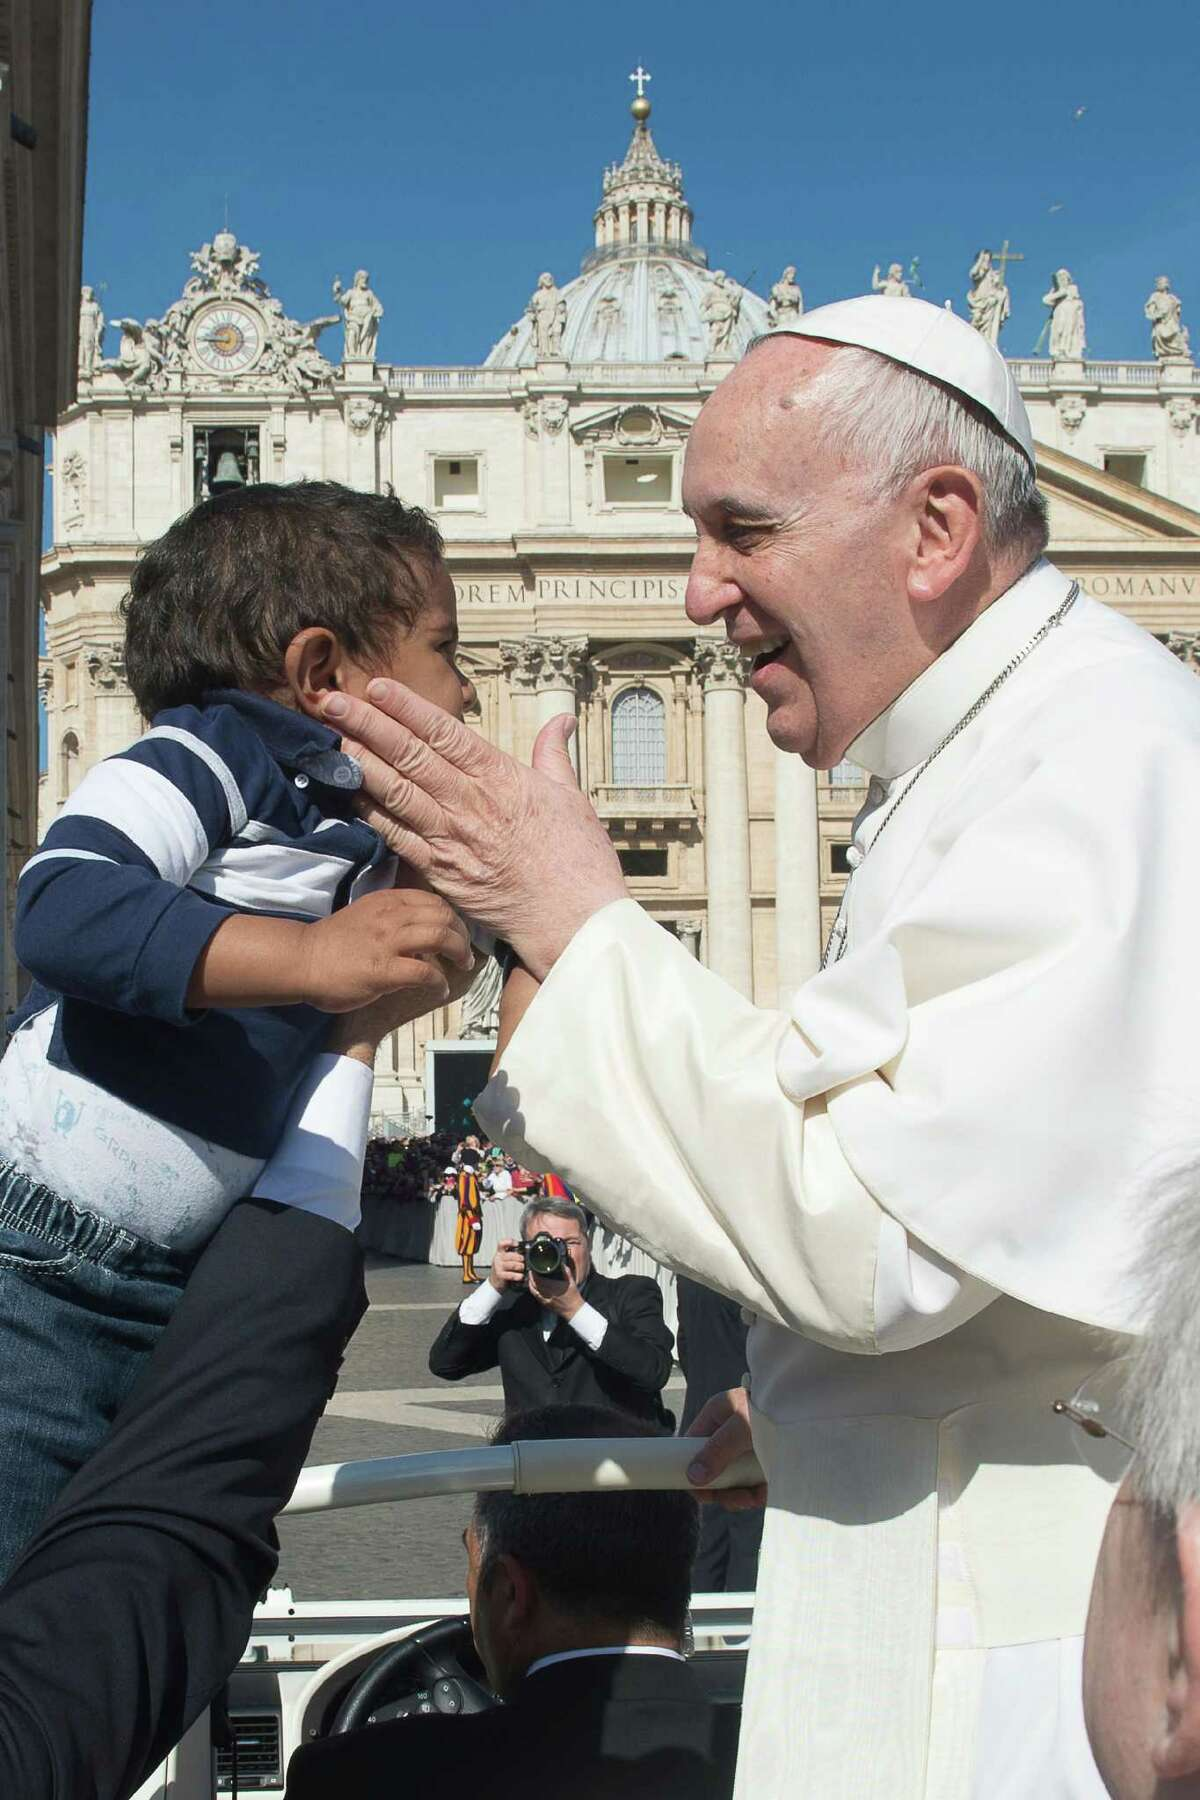 Pope Francis caresses a child as he arrives for his weekly general audience, in St. Peter's Square, at the Vatican, Wednesday, April 22, 2015. (LíOsservatore Romano/Pool Photo via AP)